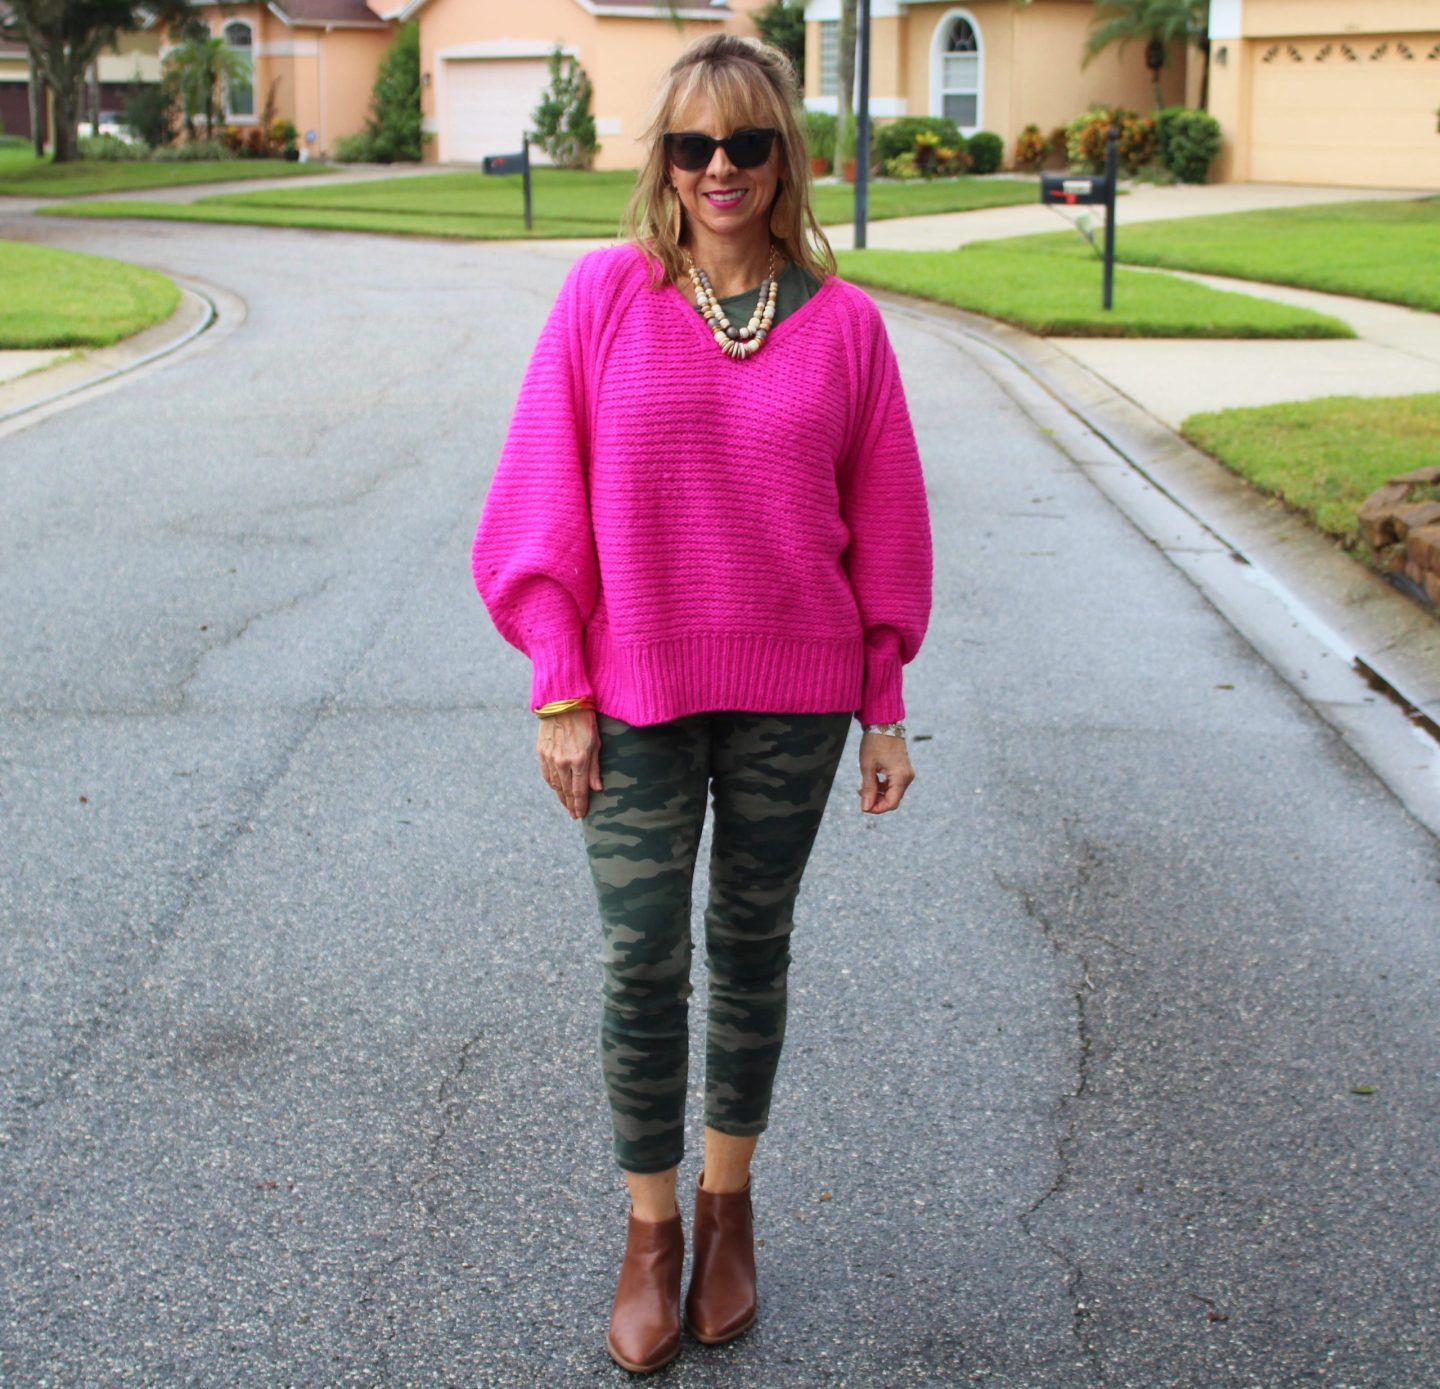 Bright Pink Sweater + Camo Pants